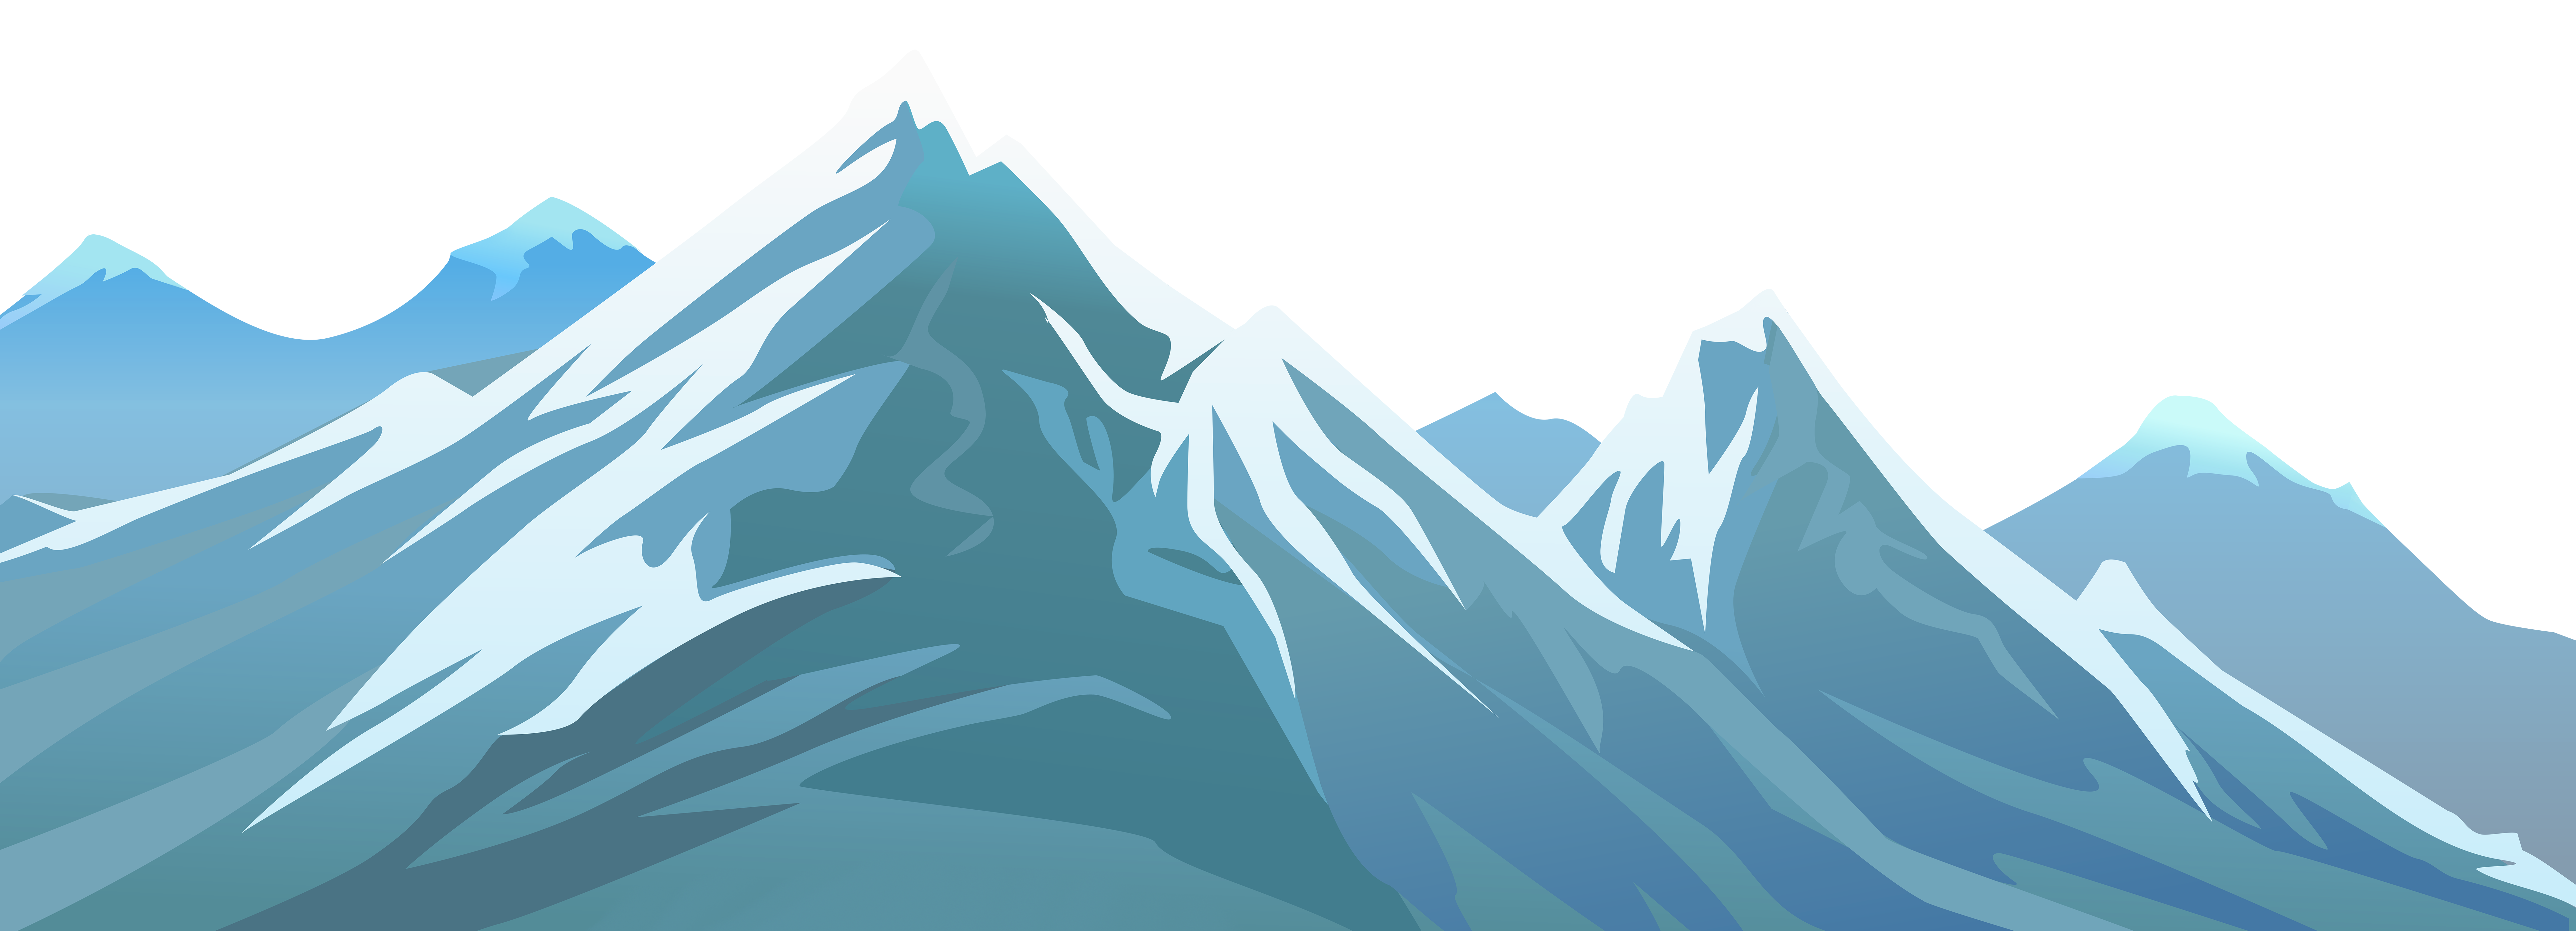 Background clipart mountain Images Mountain Free — Clipart